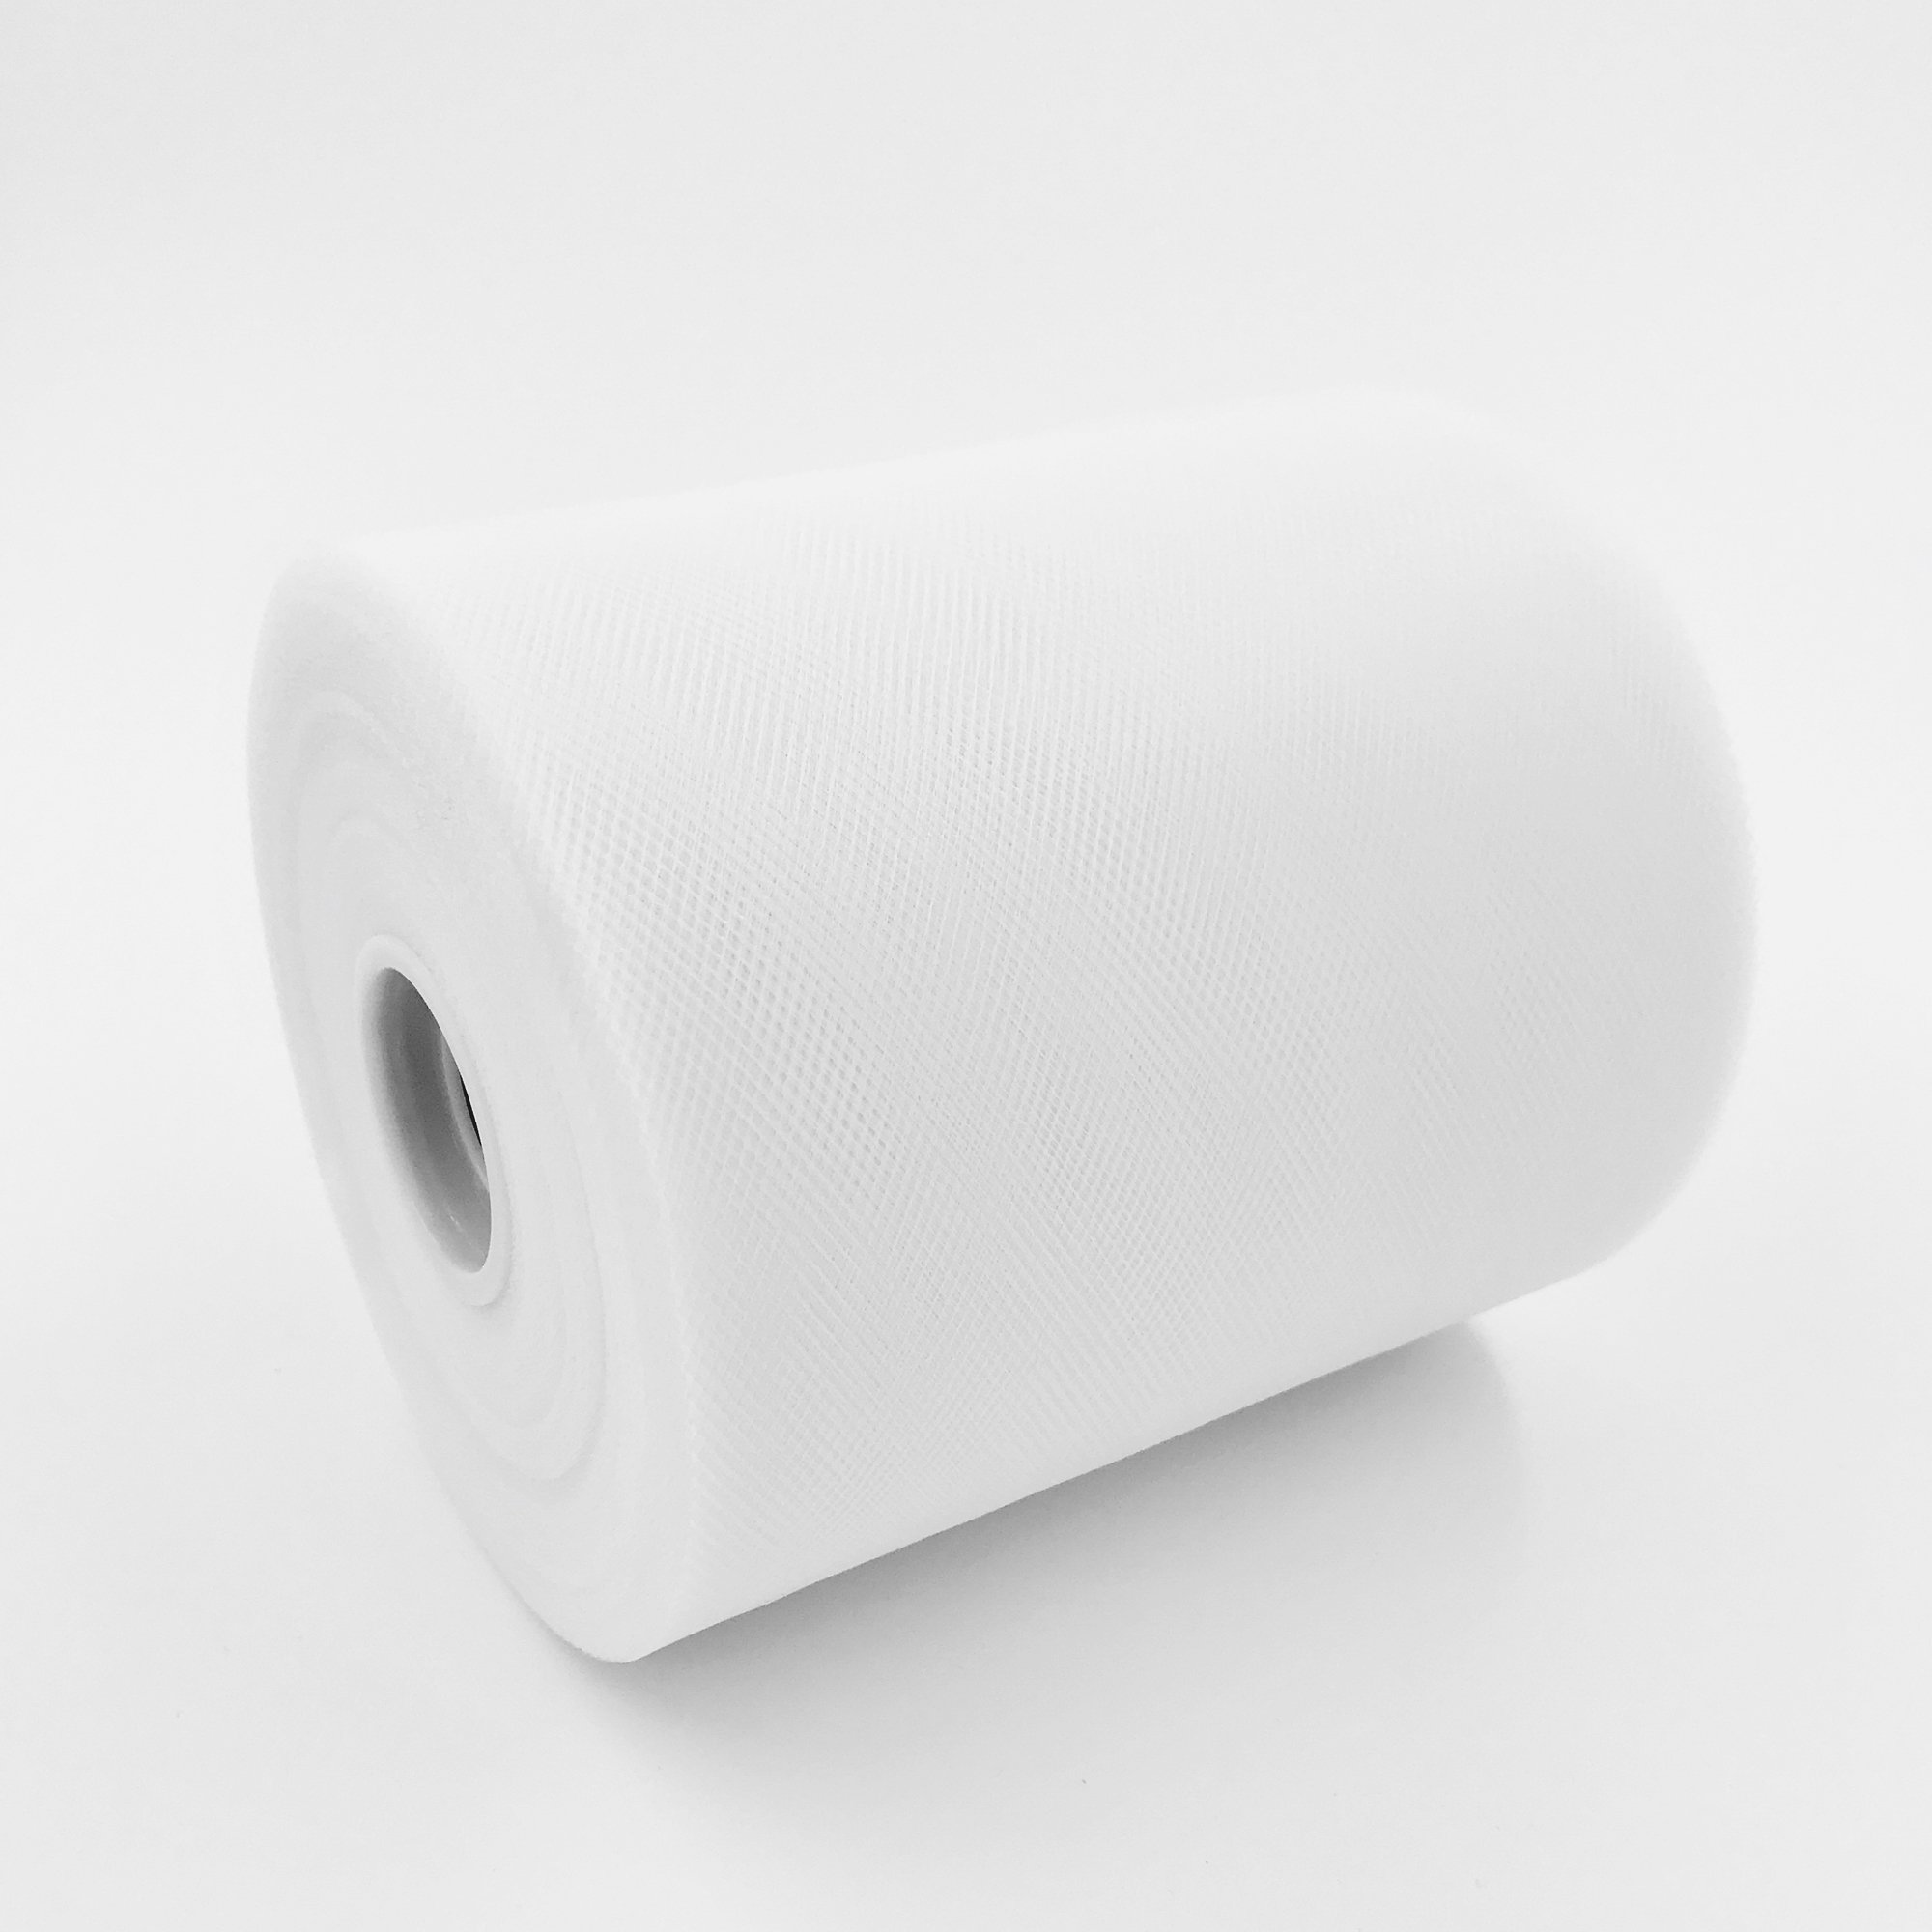 Craft and Party, 6'' by 200 Yards (600 ft) Fabric Tulle Spool for Wedding and Decoration. Value Pack. (White) by Craft And Party (Image #3)